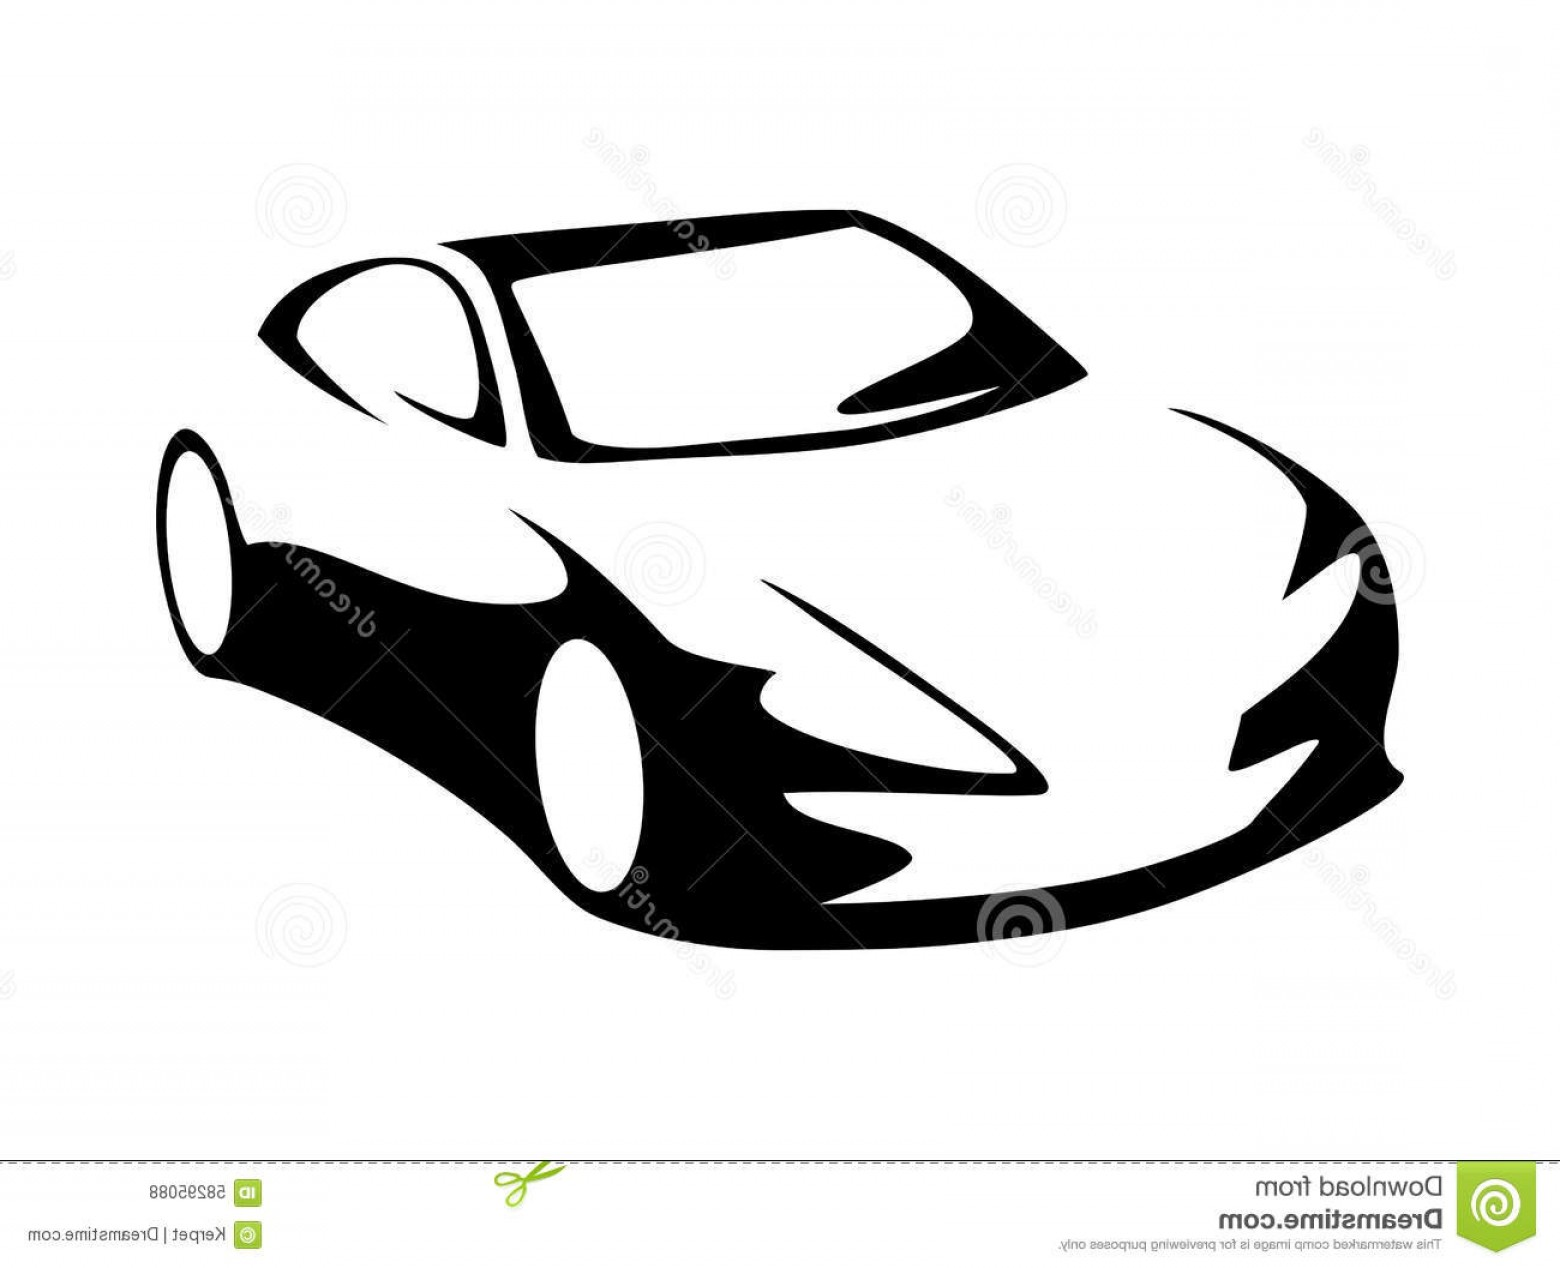 Car Silhouette Vector Free: Stock Illustration Modern Car Silhouette Vector Front View Image